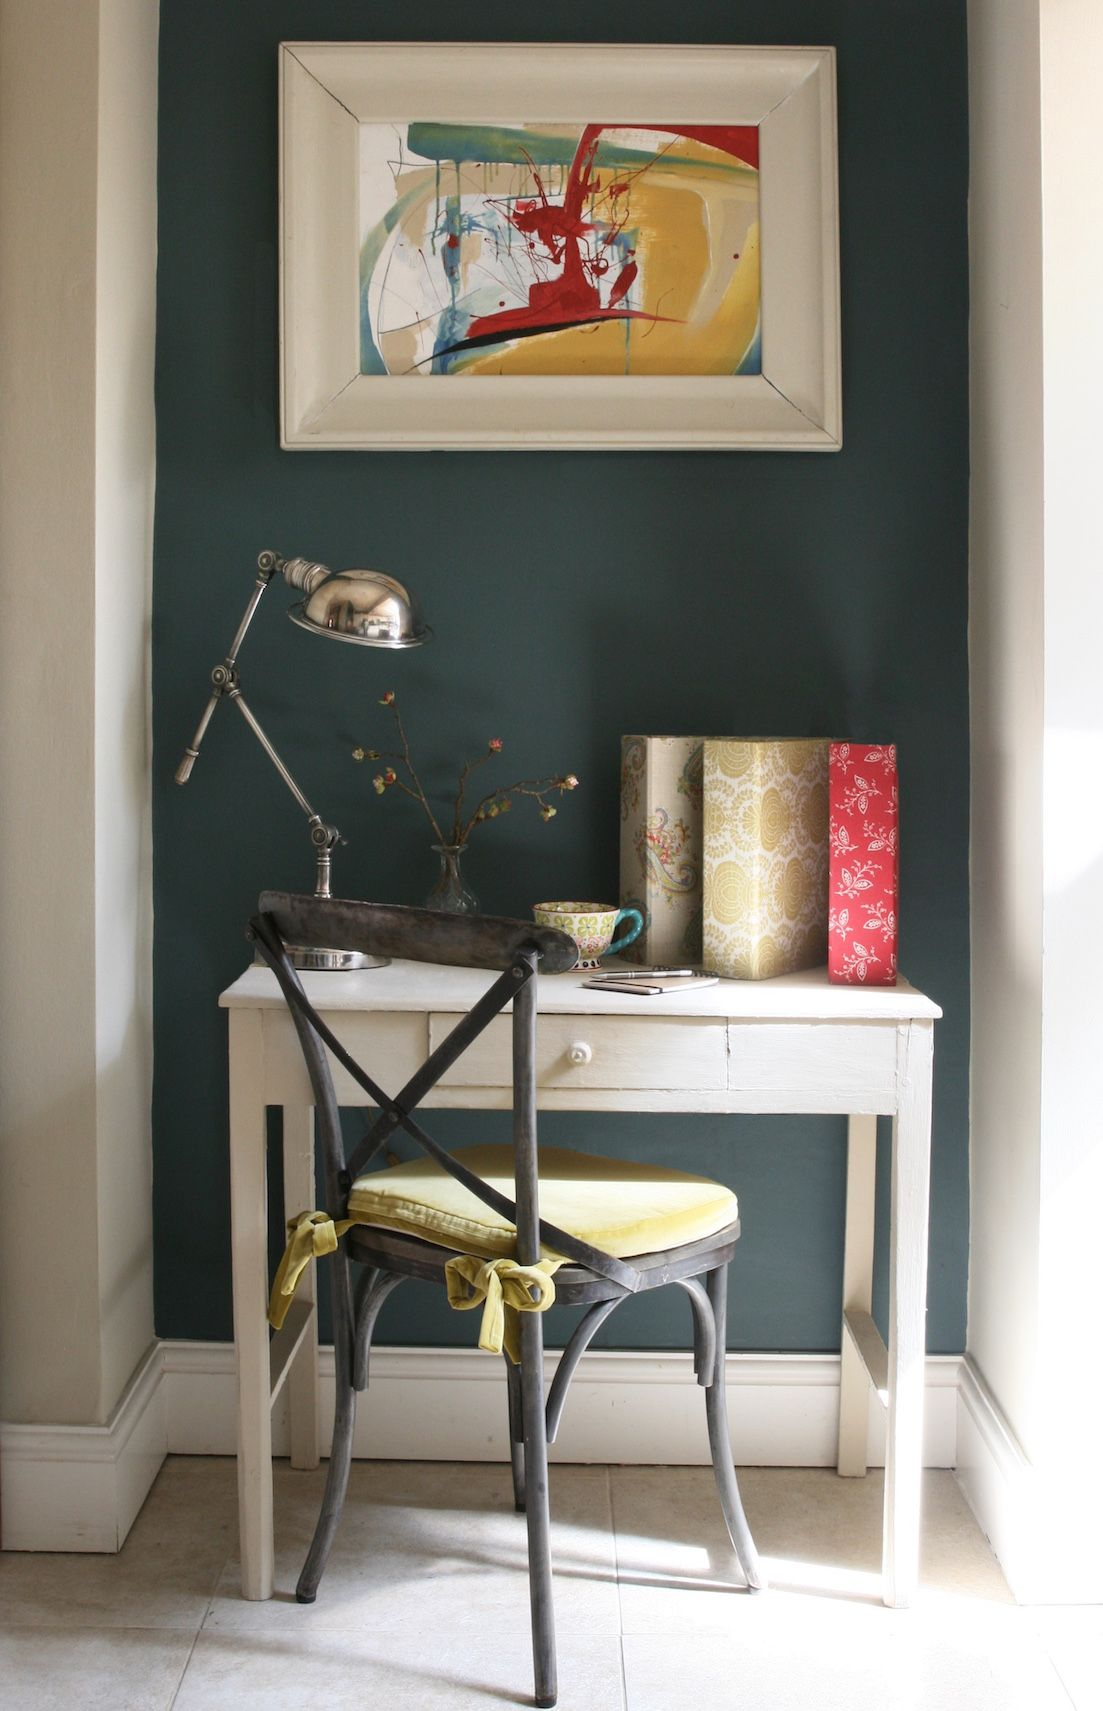 Injecting rich colour with Farrow & Ball's newest paint. Having recently moved house I have been all over paint charts and painting furiously to inject more of a 'me' feel to the house. One particular colour I've got a bit of a crush on at the moment is the stunningly beautiful new colour from Farrow […]